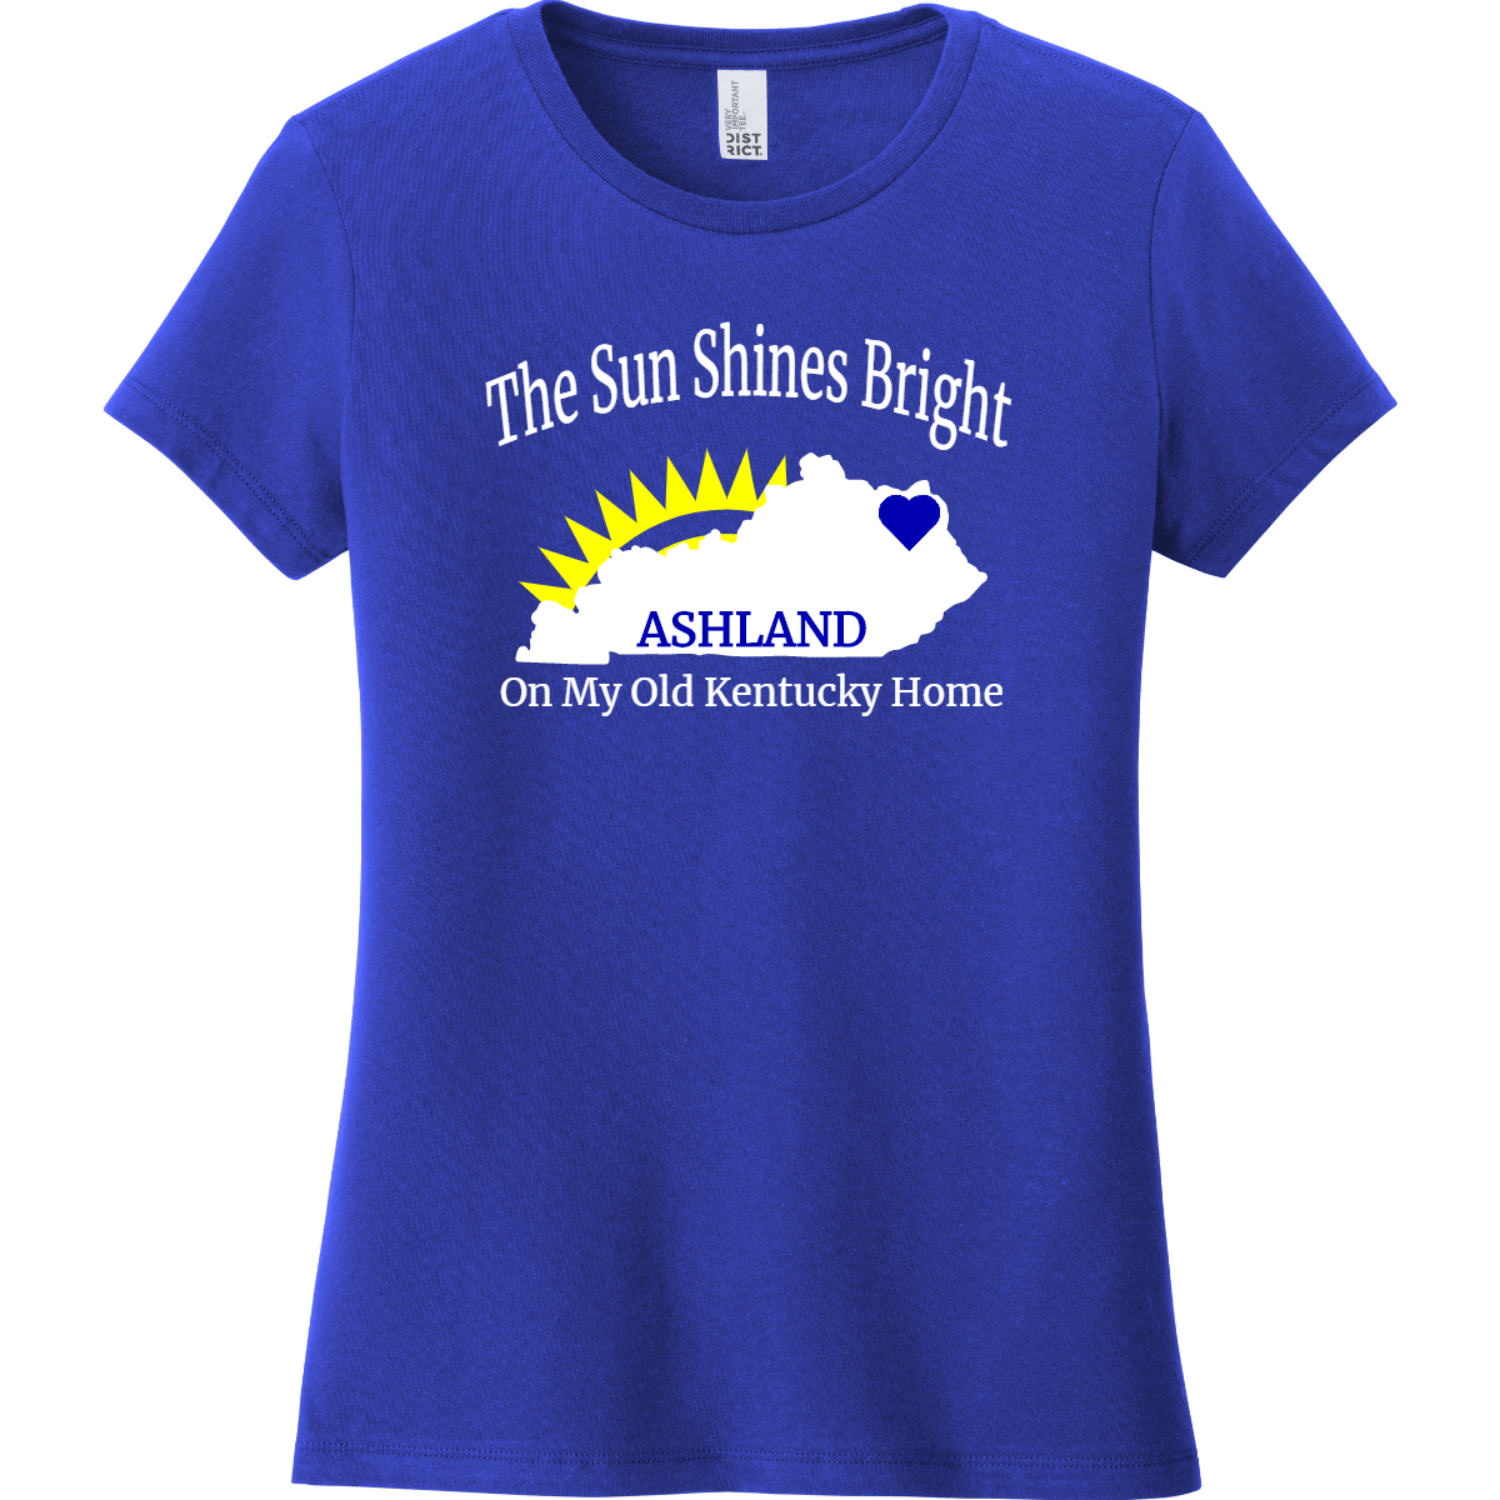 Ashland Kentucky The Sun Shines Bright Ladies T Shirt Deep Royal District Women's Very Important Tee DT6002